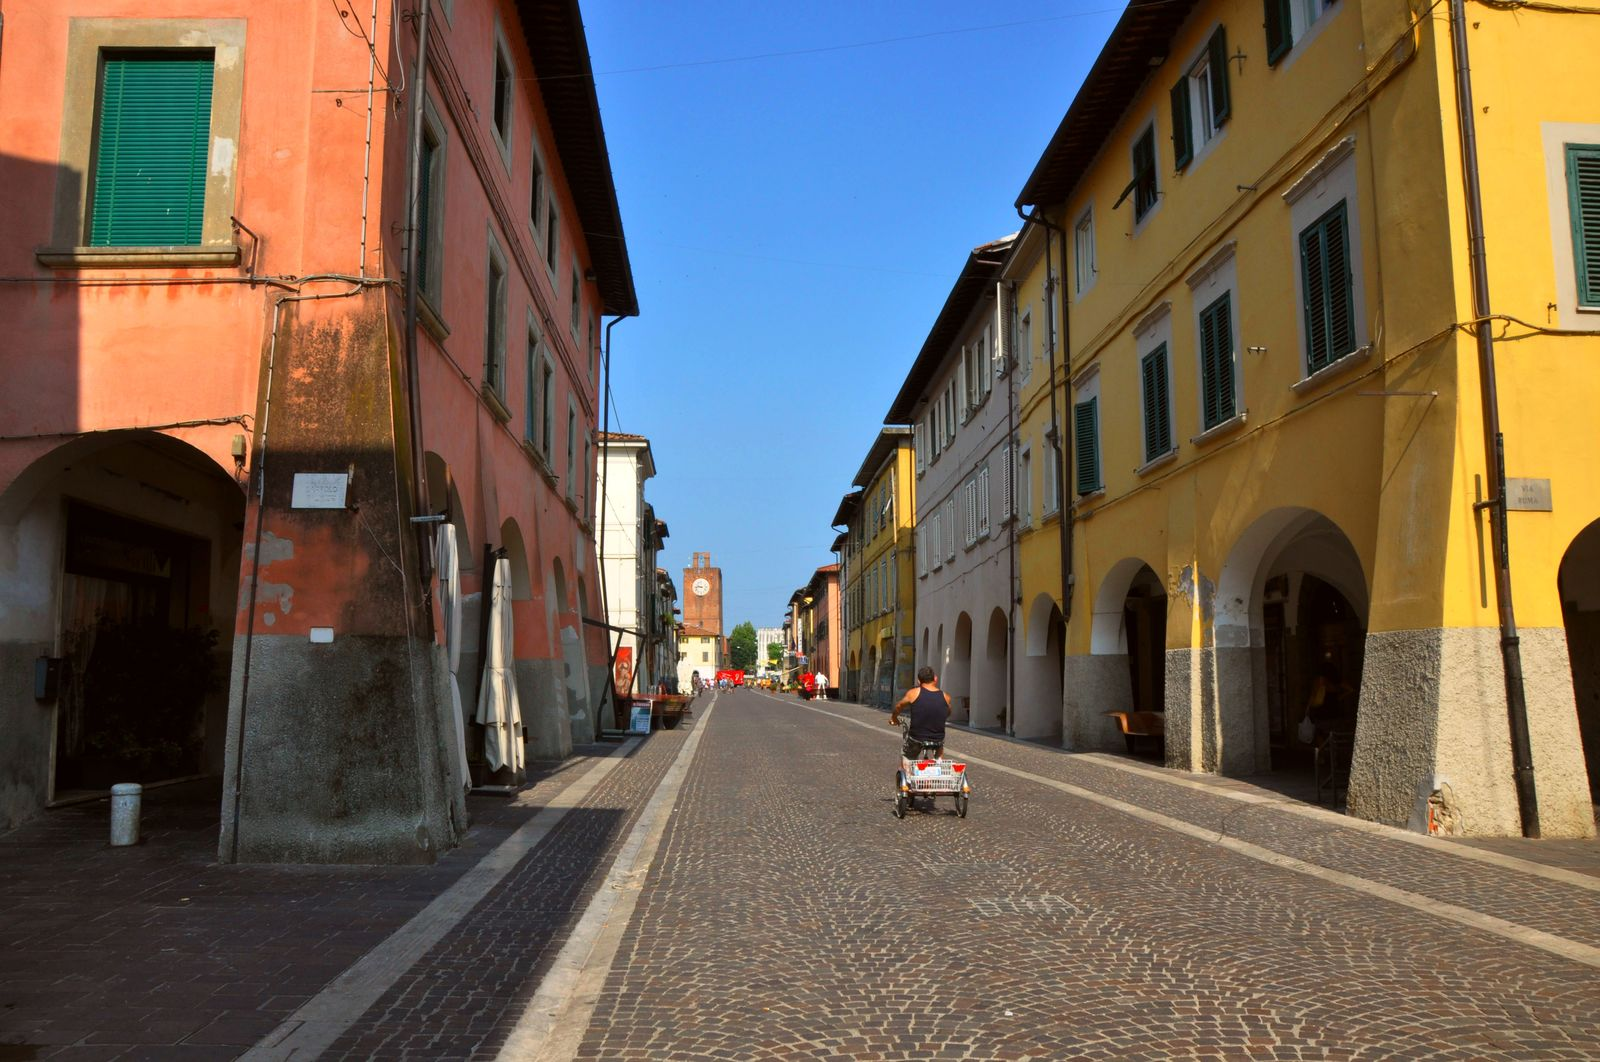 Cascina - Forever fighting the enemy